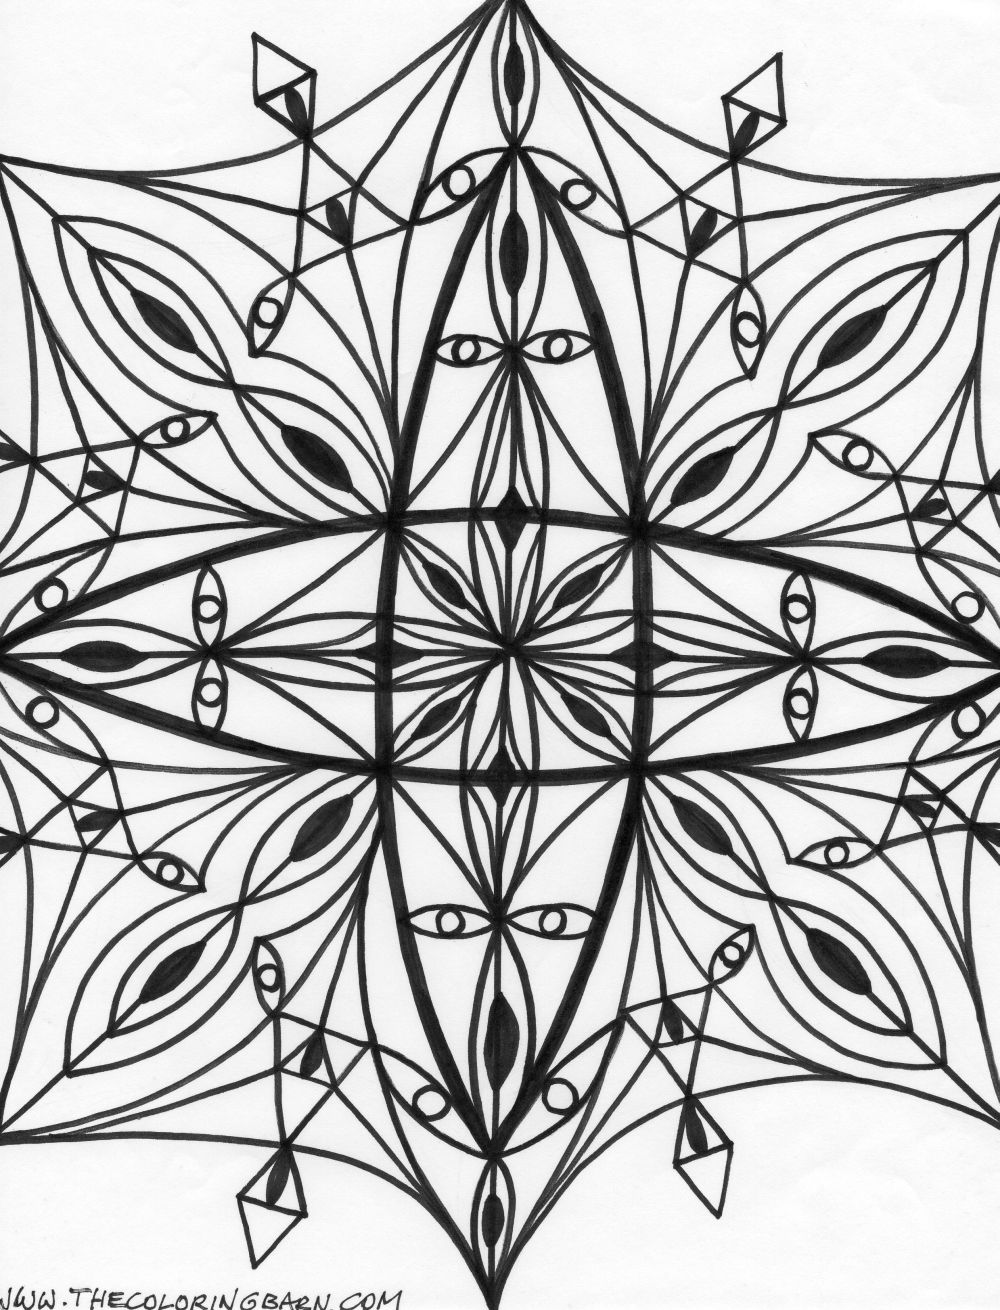 Free coloring pages kaleidoscope designs - Christmas Kaleidoscope Coloring Pages Coloring Page